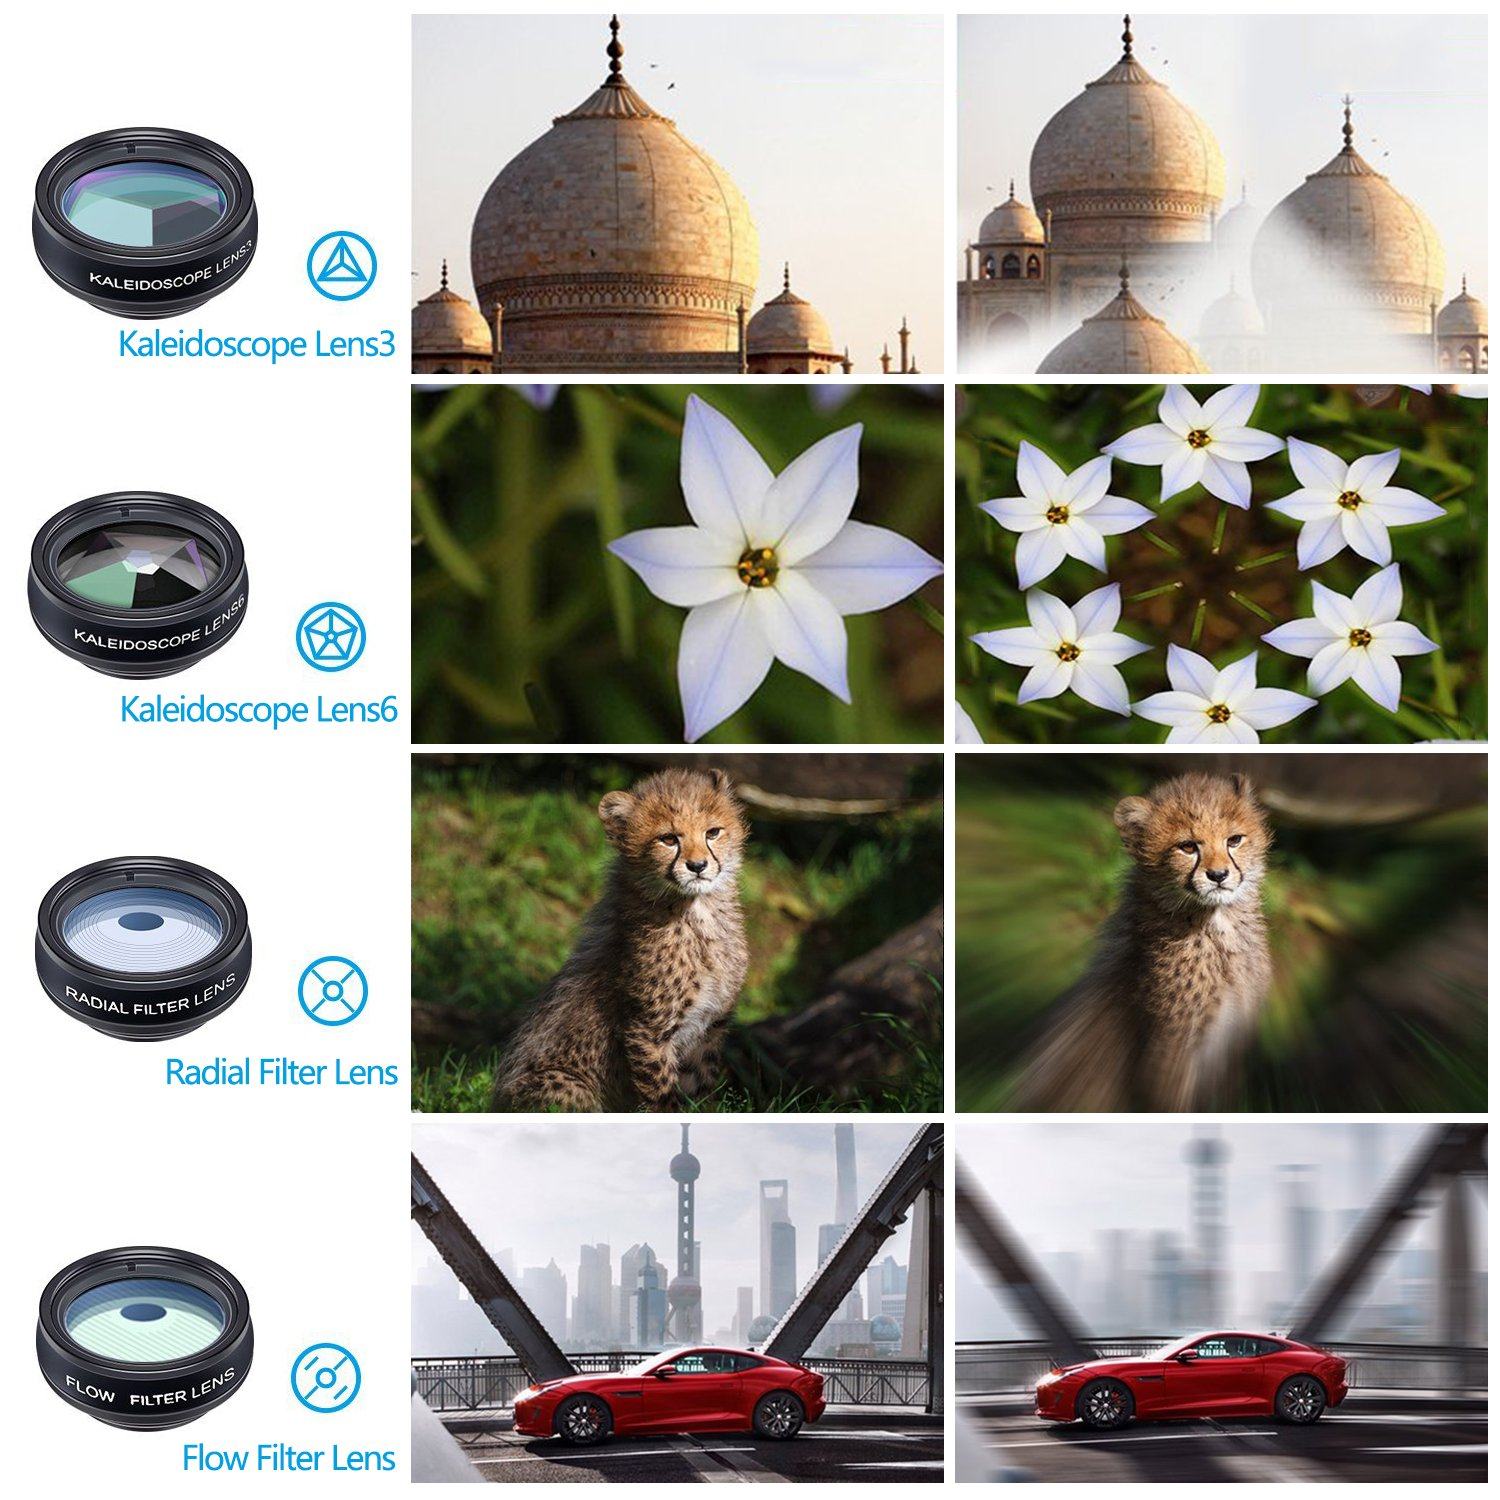 Cell Phone Camera Lens Kit by Ailuki with Professional Telephoto Lens,Wide Angle Lens+Macro Lens+Fisheye Lens, Selfie Remote Control+Tripod for iPhone Samsung Galaxy Most of Smartphone and iPad by AILUKI (Image #3)